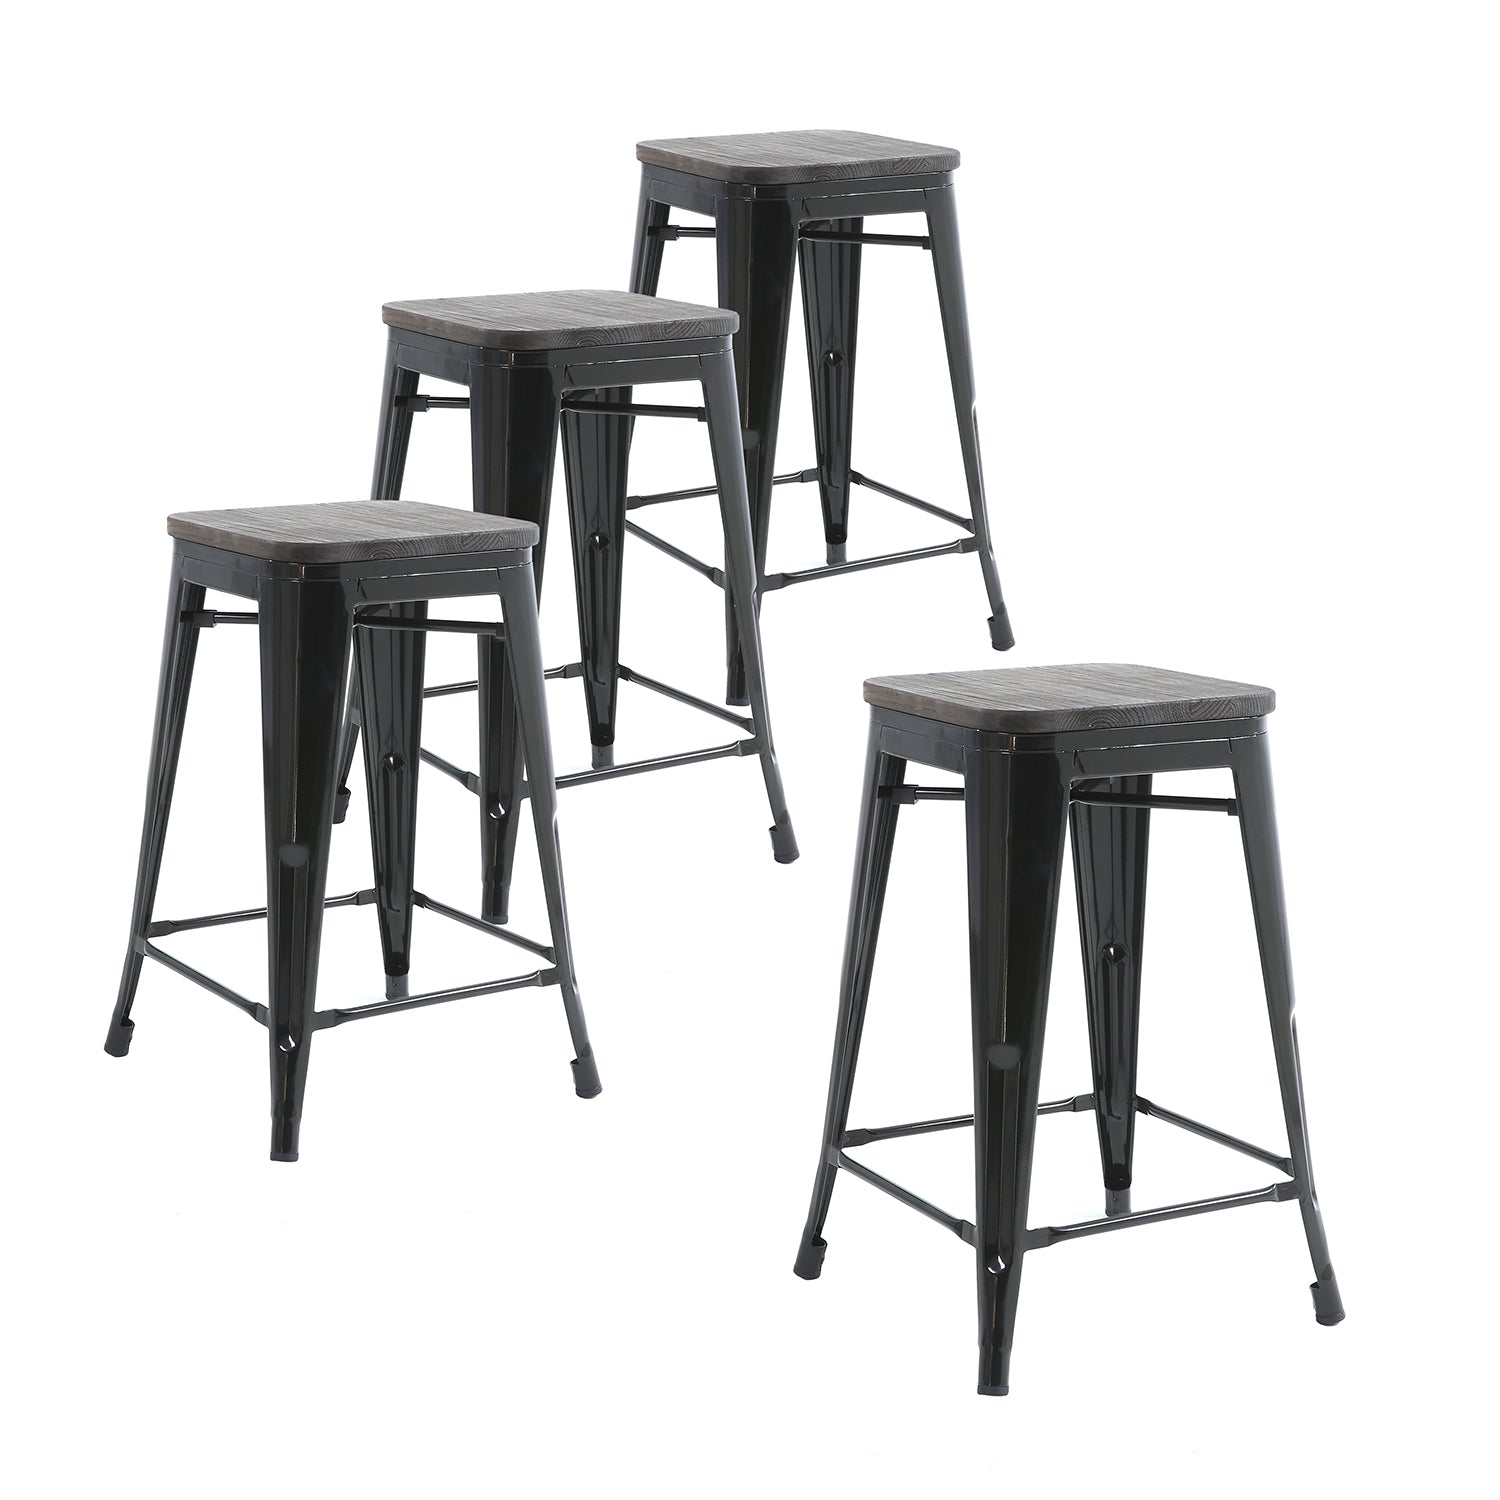 Buschman Set Of 4 Black Wooden Seat 24 Inch Counter Height Metal Bar